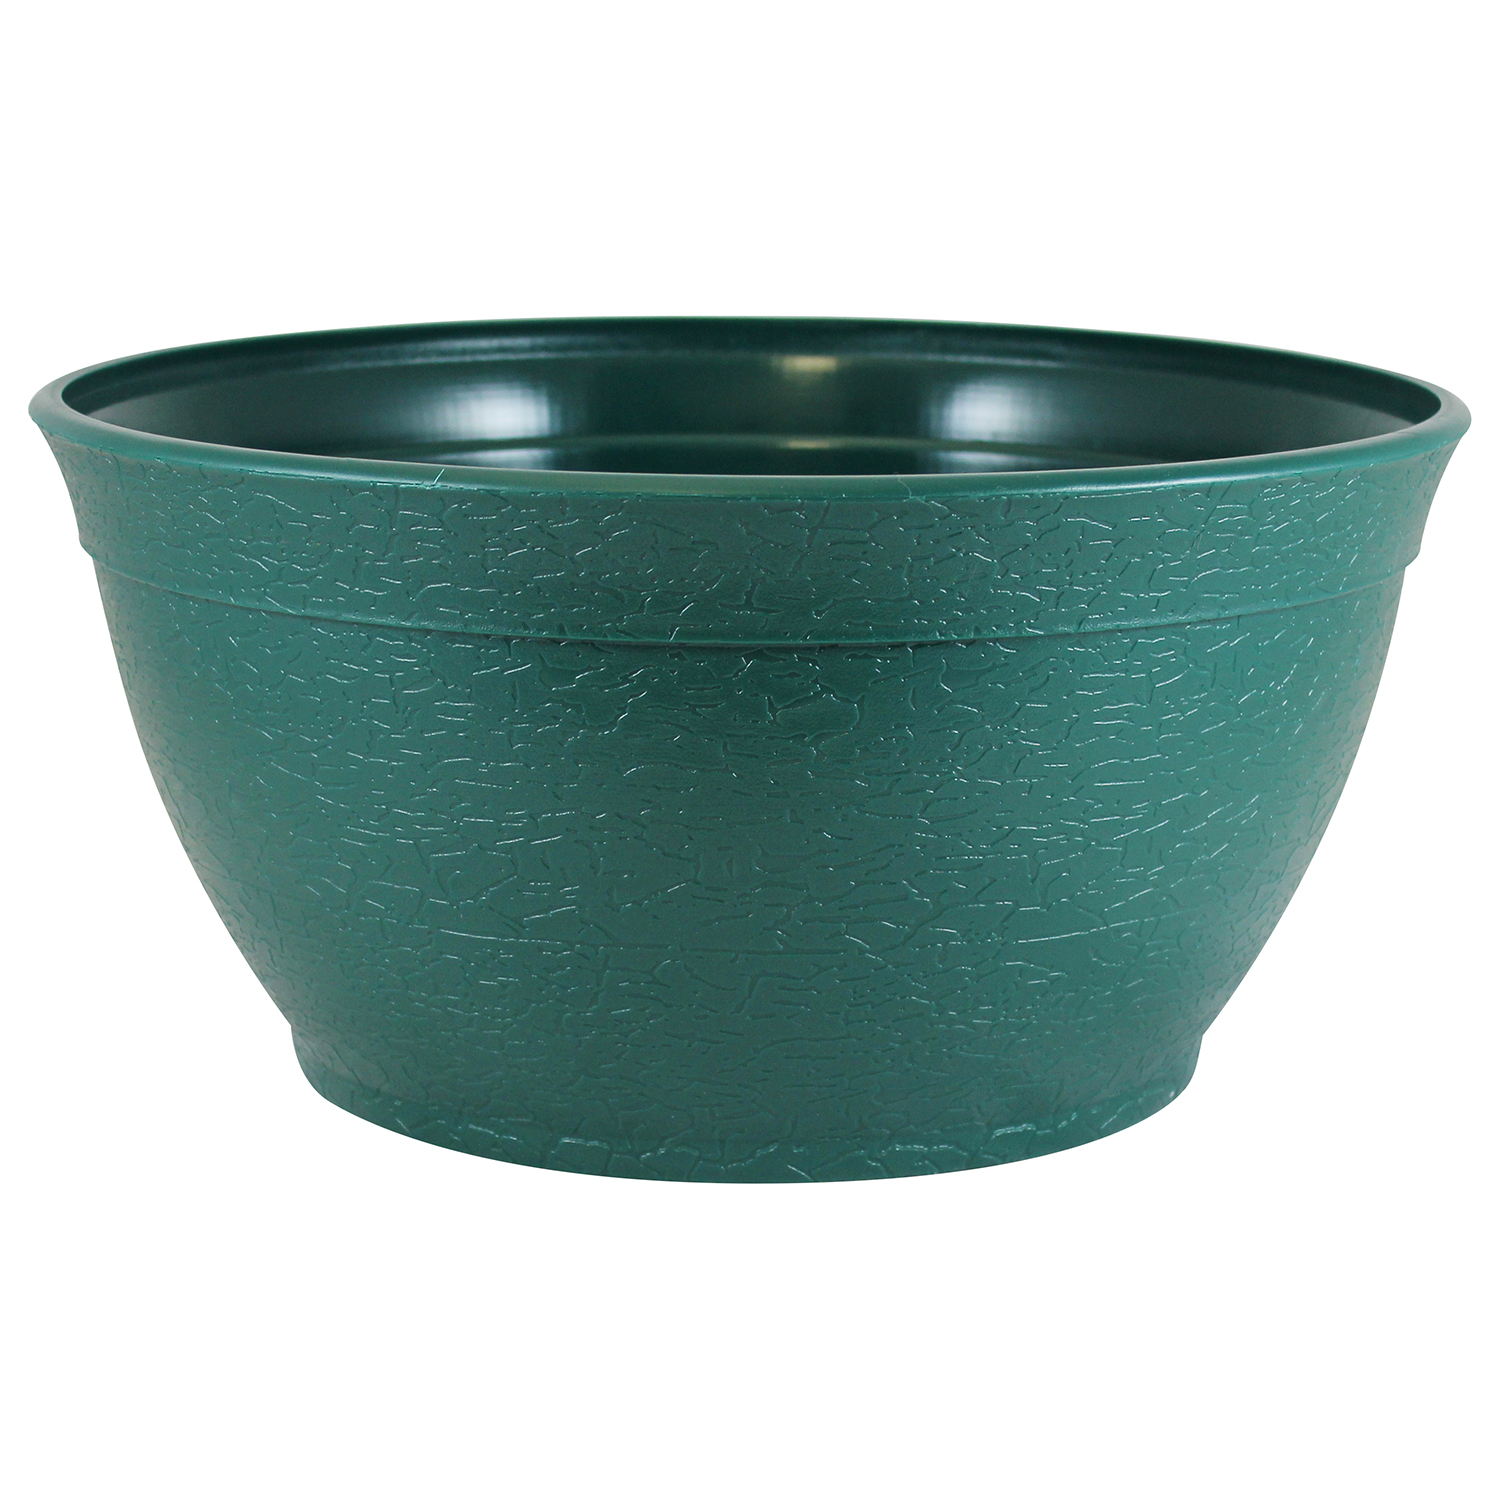 "Bloomers 14"" Porch Planter - Textured Flower Pot and Herb Garden - Hunter Green"